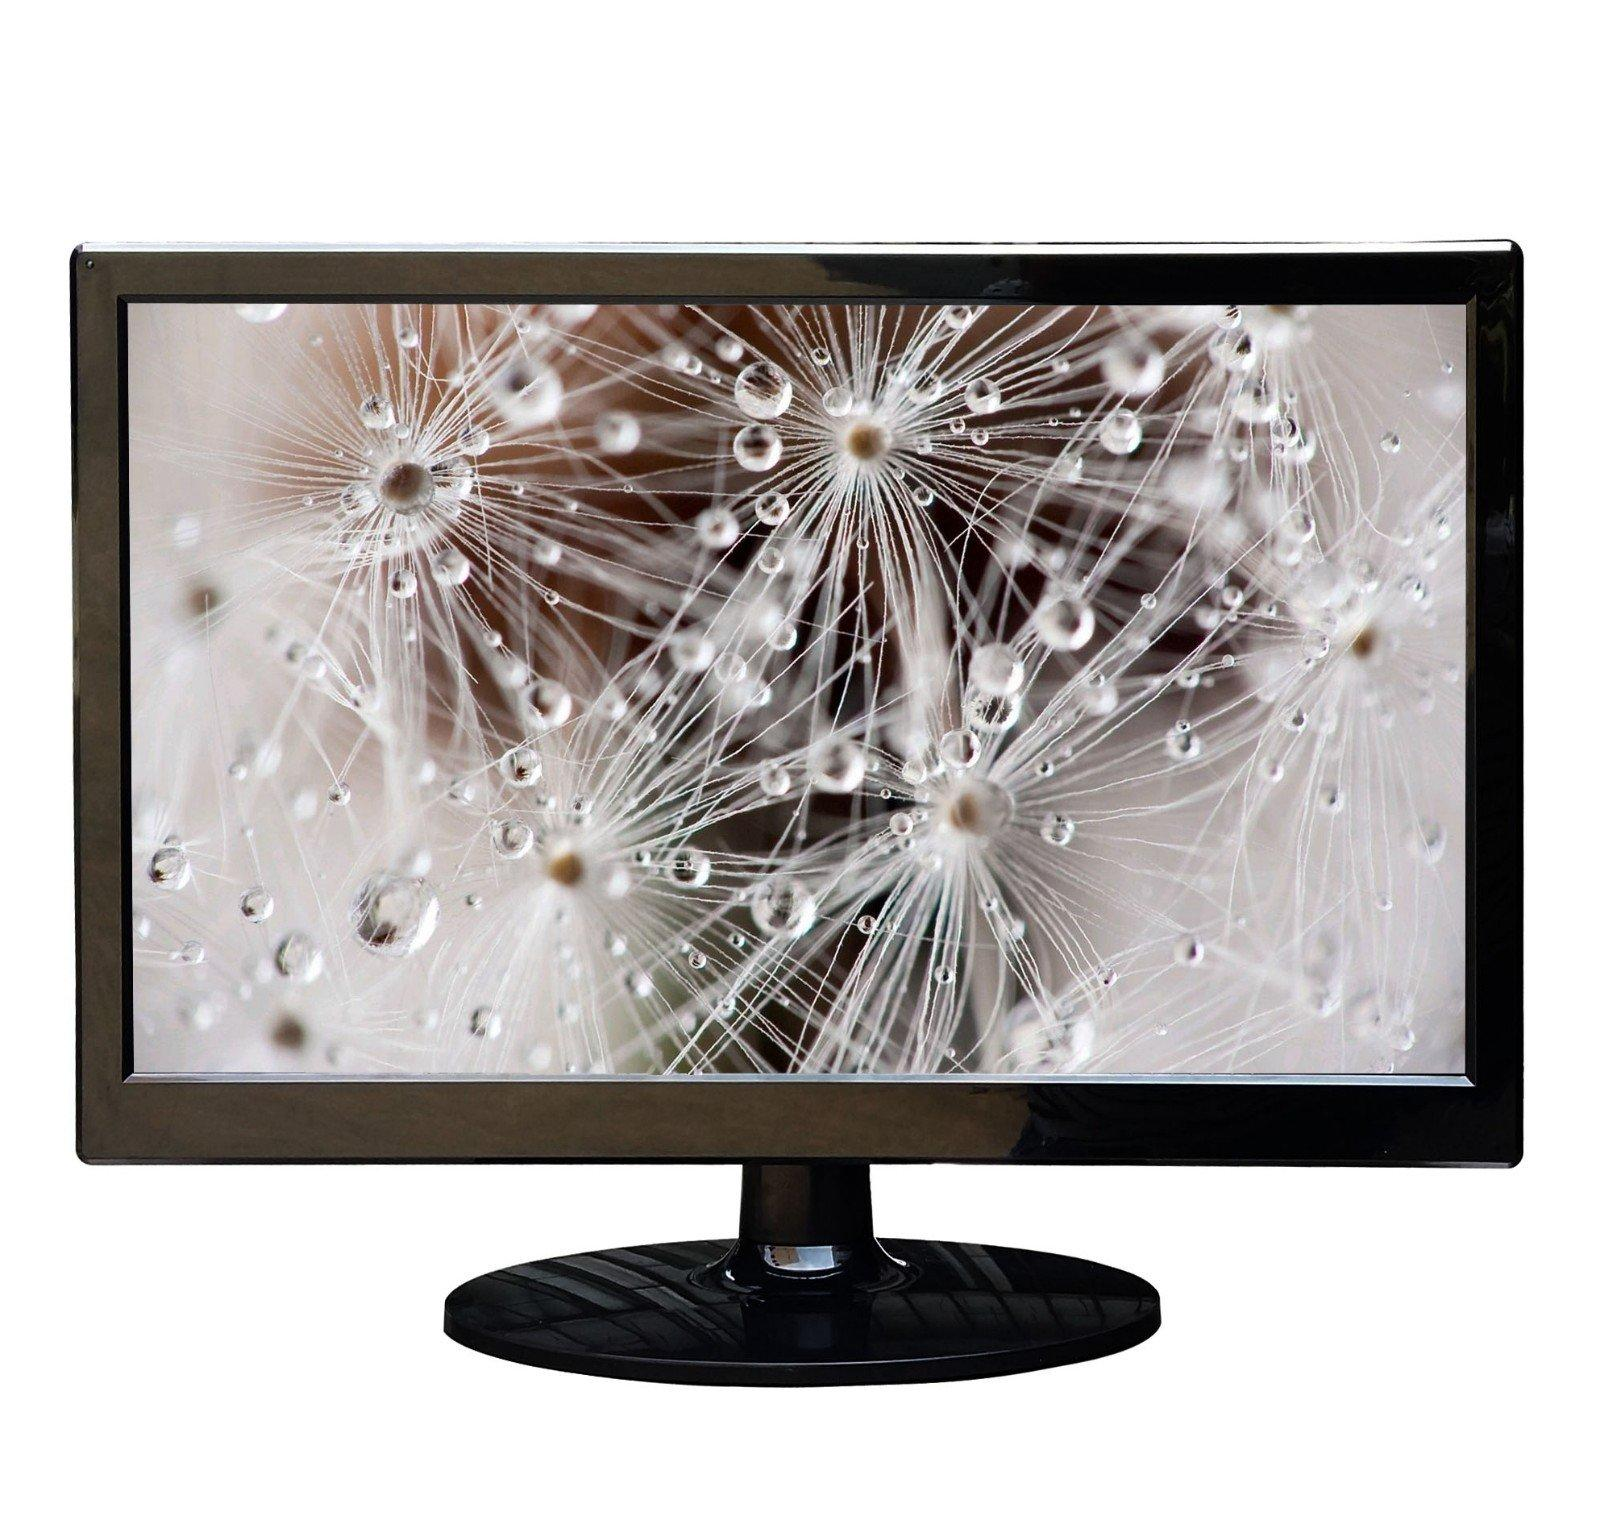 Xinyao LCD hot brand 19 inch full hd monitor front speaker for lcd screen-3